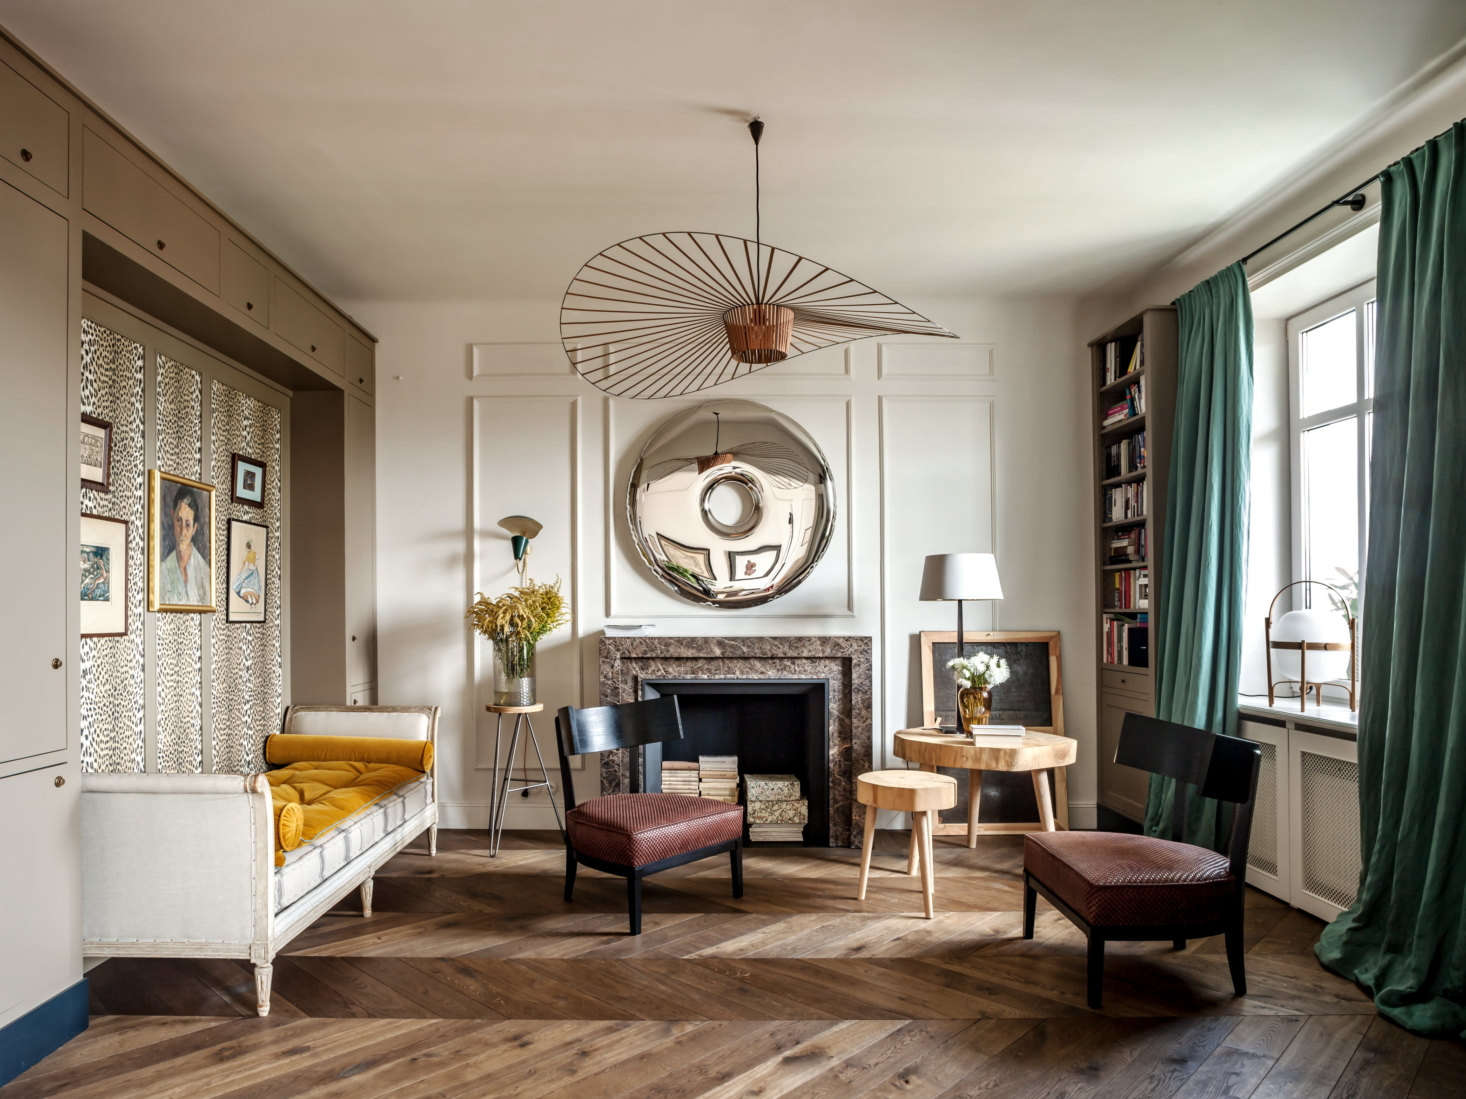 Hovering above the living room is the Vertigo chandelier byPetite Friture. The other showstopper in the room is the round metallic artwork by Polish architect and designerOskar Ziet.